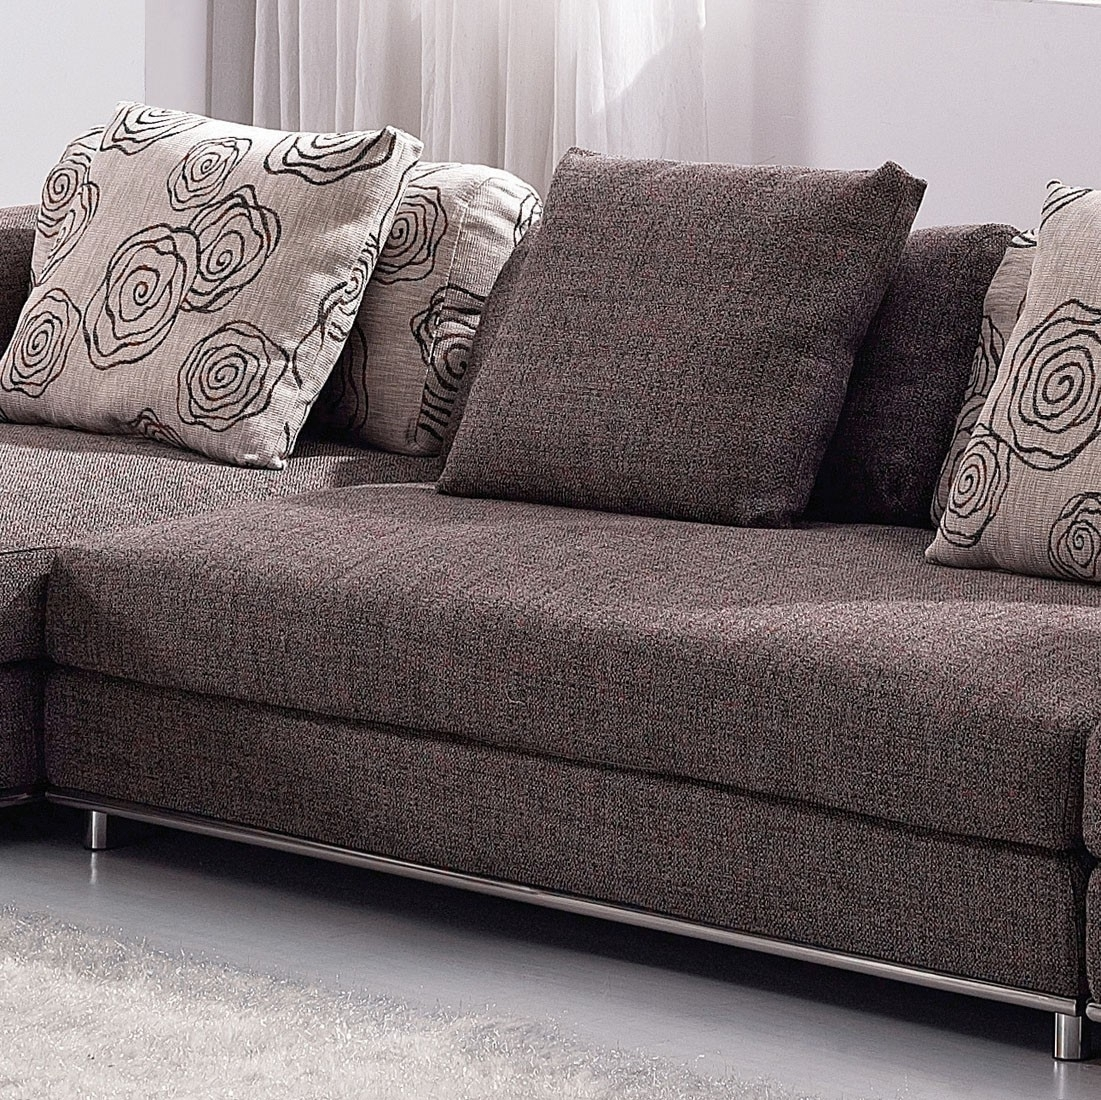 Ikea Couch Bezug Couchtuner Twin Peaks Covers Marshalls Hawaii Five With Hawaii Sectional Sofas (View 10 of 10)